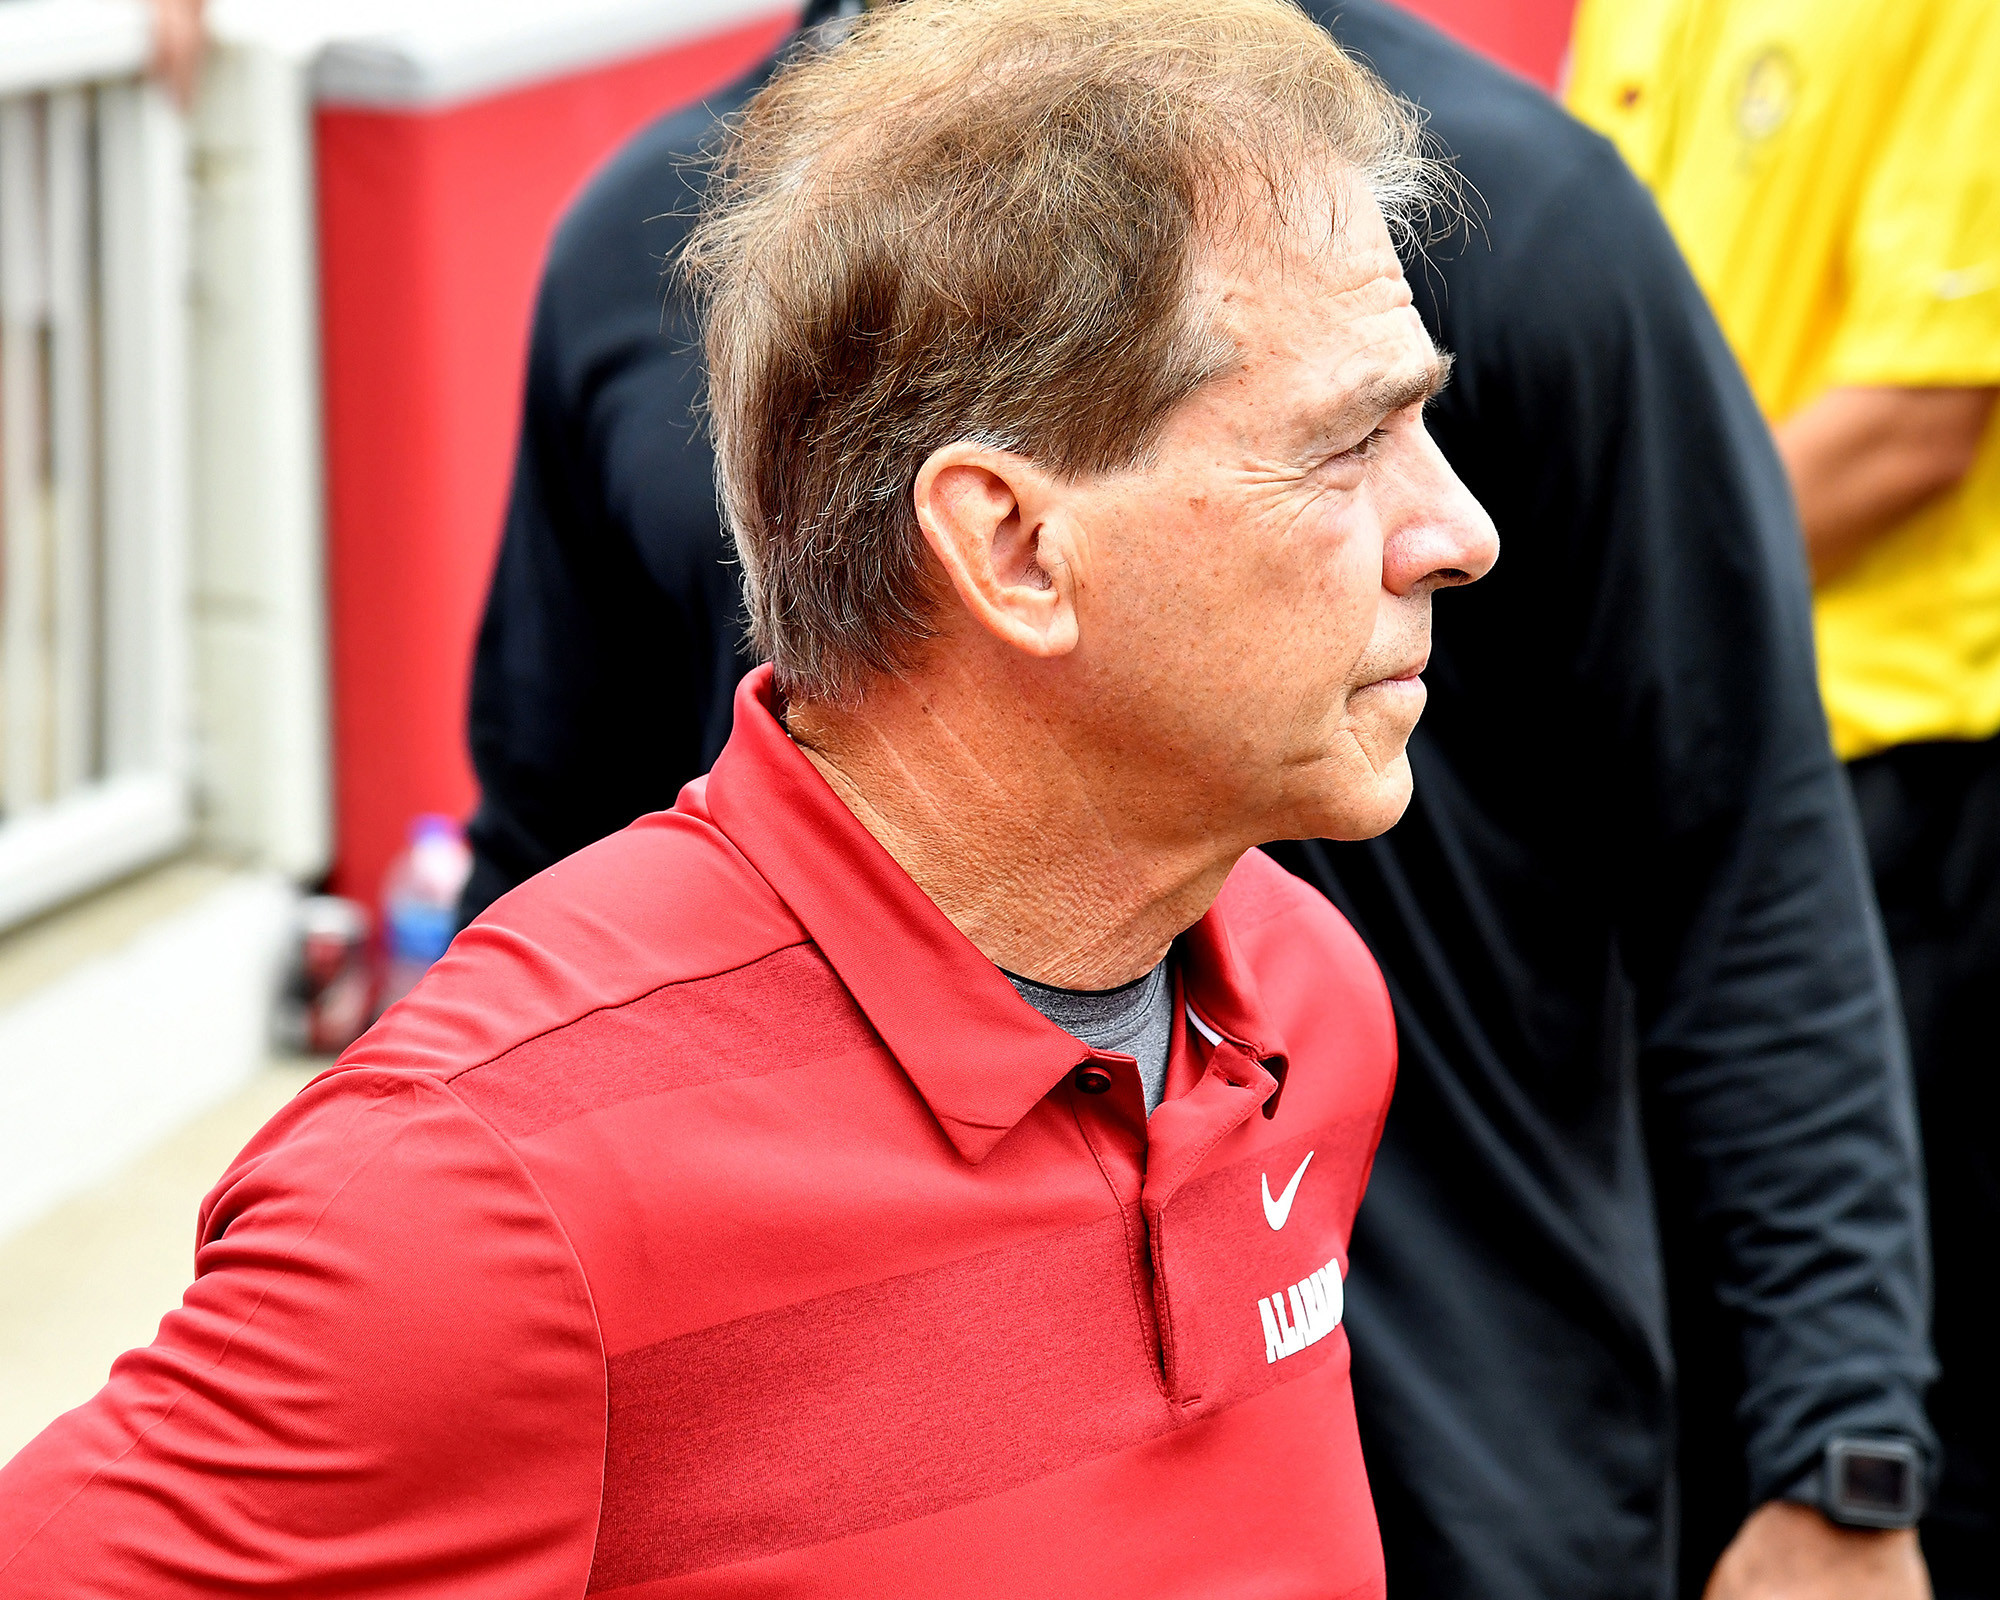 Alabama Crimson Tide head coach Nick Saban is pictured in the tunnel prior to taking the field at Razorback Stadium on Oct. 6, 2018, in Fayetteville, Ark. Alabama defeated Arkansas 65-31. (Photo by Lee Walls)